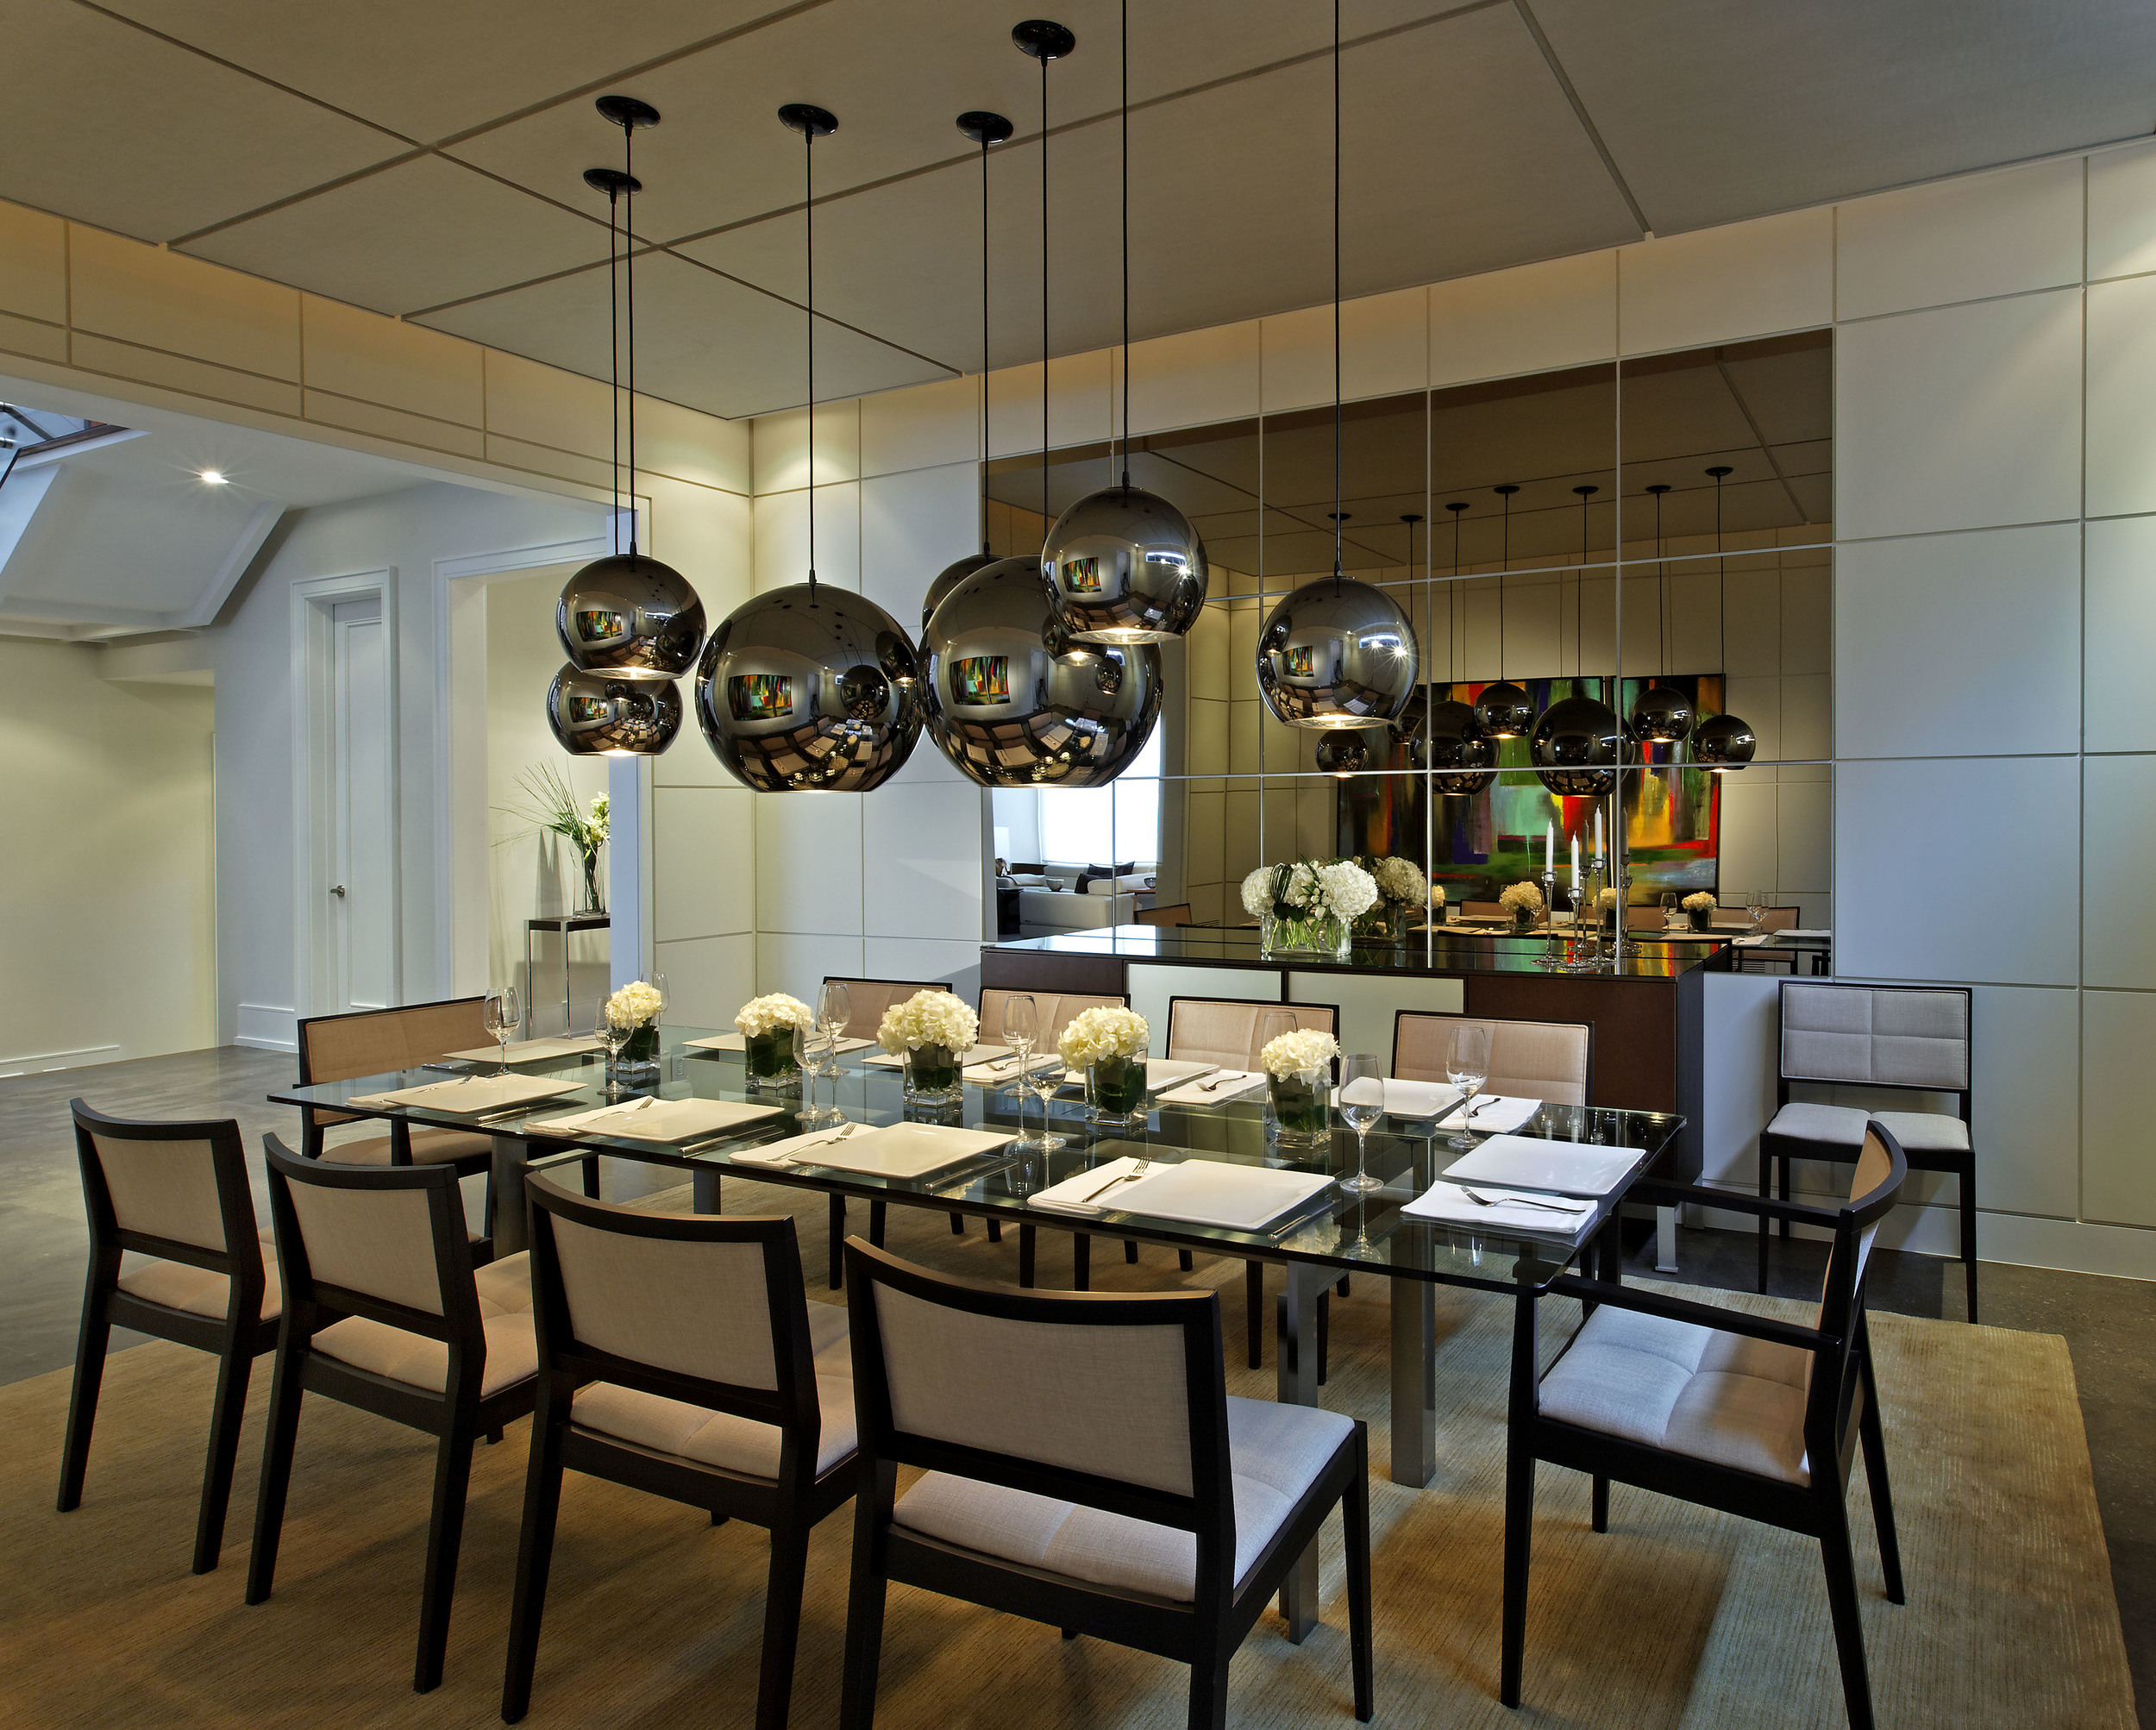 This long-awaited, custom-designed dream home balances the couple's love of pared down, austere, modern environments with their desire for an inviting, cozy, family-oriented environment. Bronzed mirror panels set into the dining room's painted panel walls with ½ inch reveals, reflect the furnishings, art and playful pendant lights. Those highly reflective fixtures themselves create infinite layers of colour and shape, in which is actually a very simply finished room.